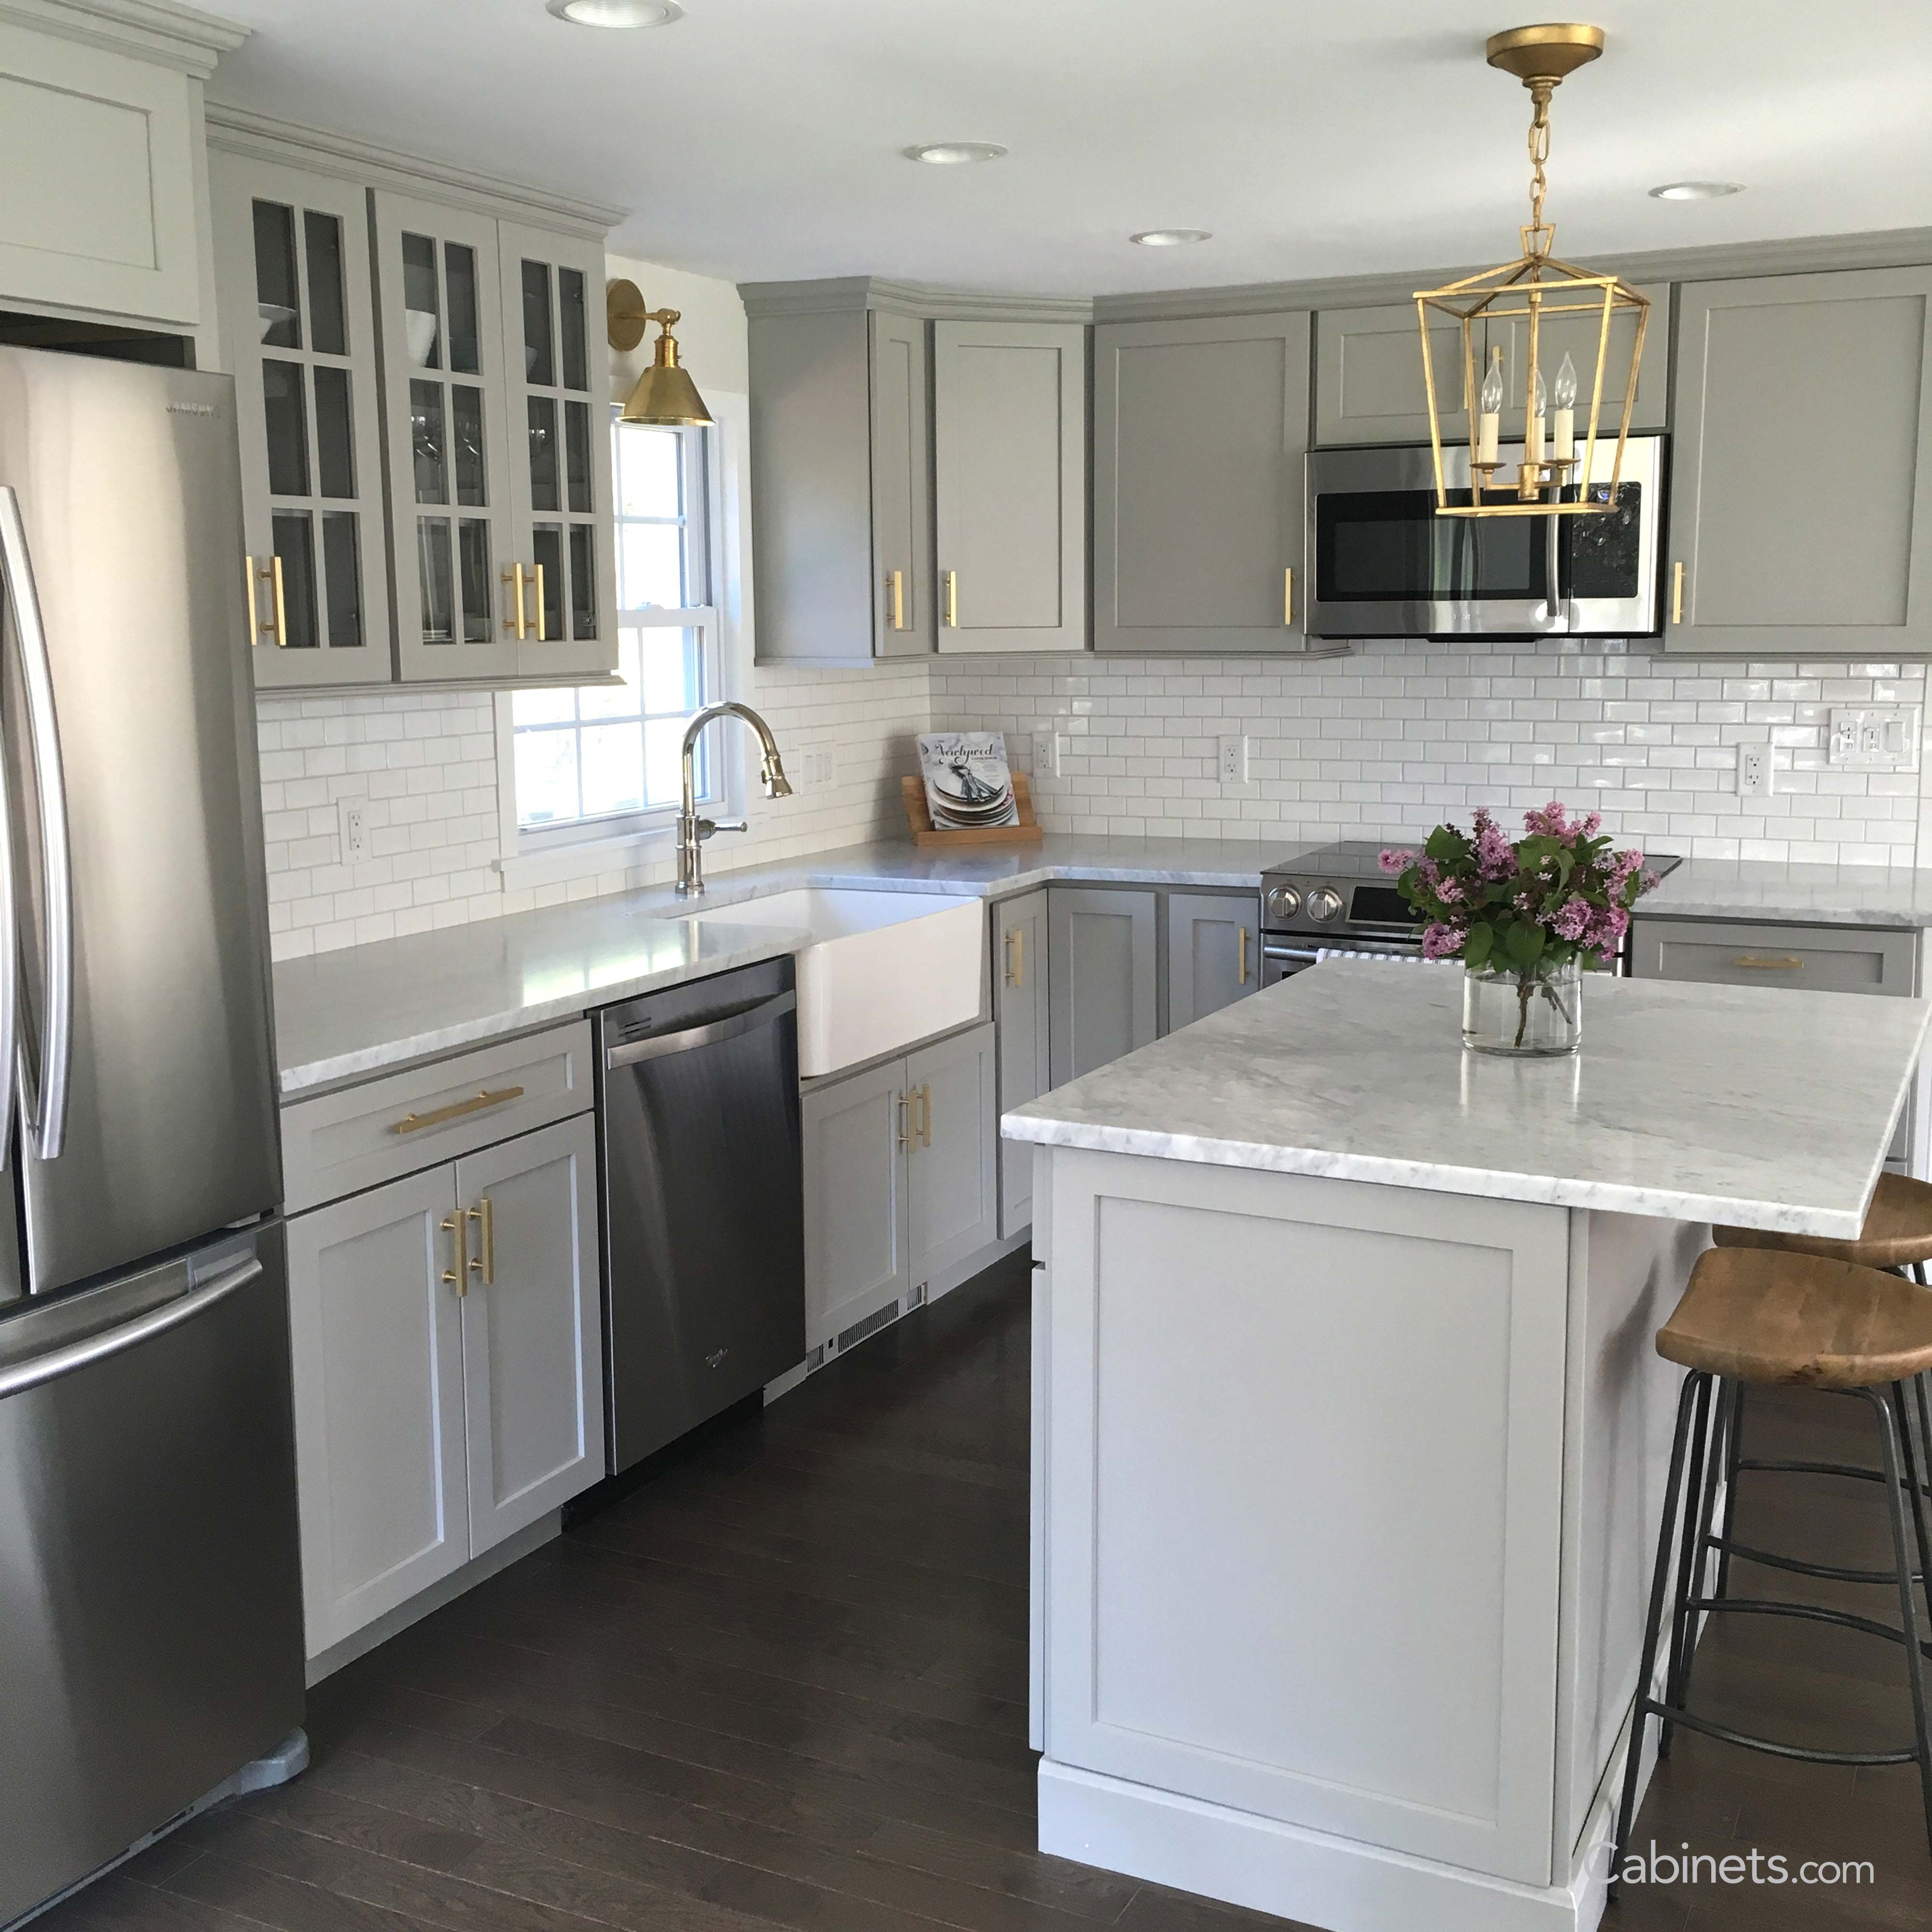 classic style light gray kitchen with muted gold hardware cabinets com light grey kitchens on kitchen decor grey cabinets id=77905